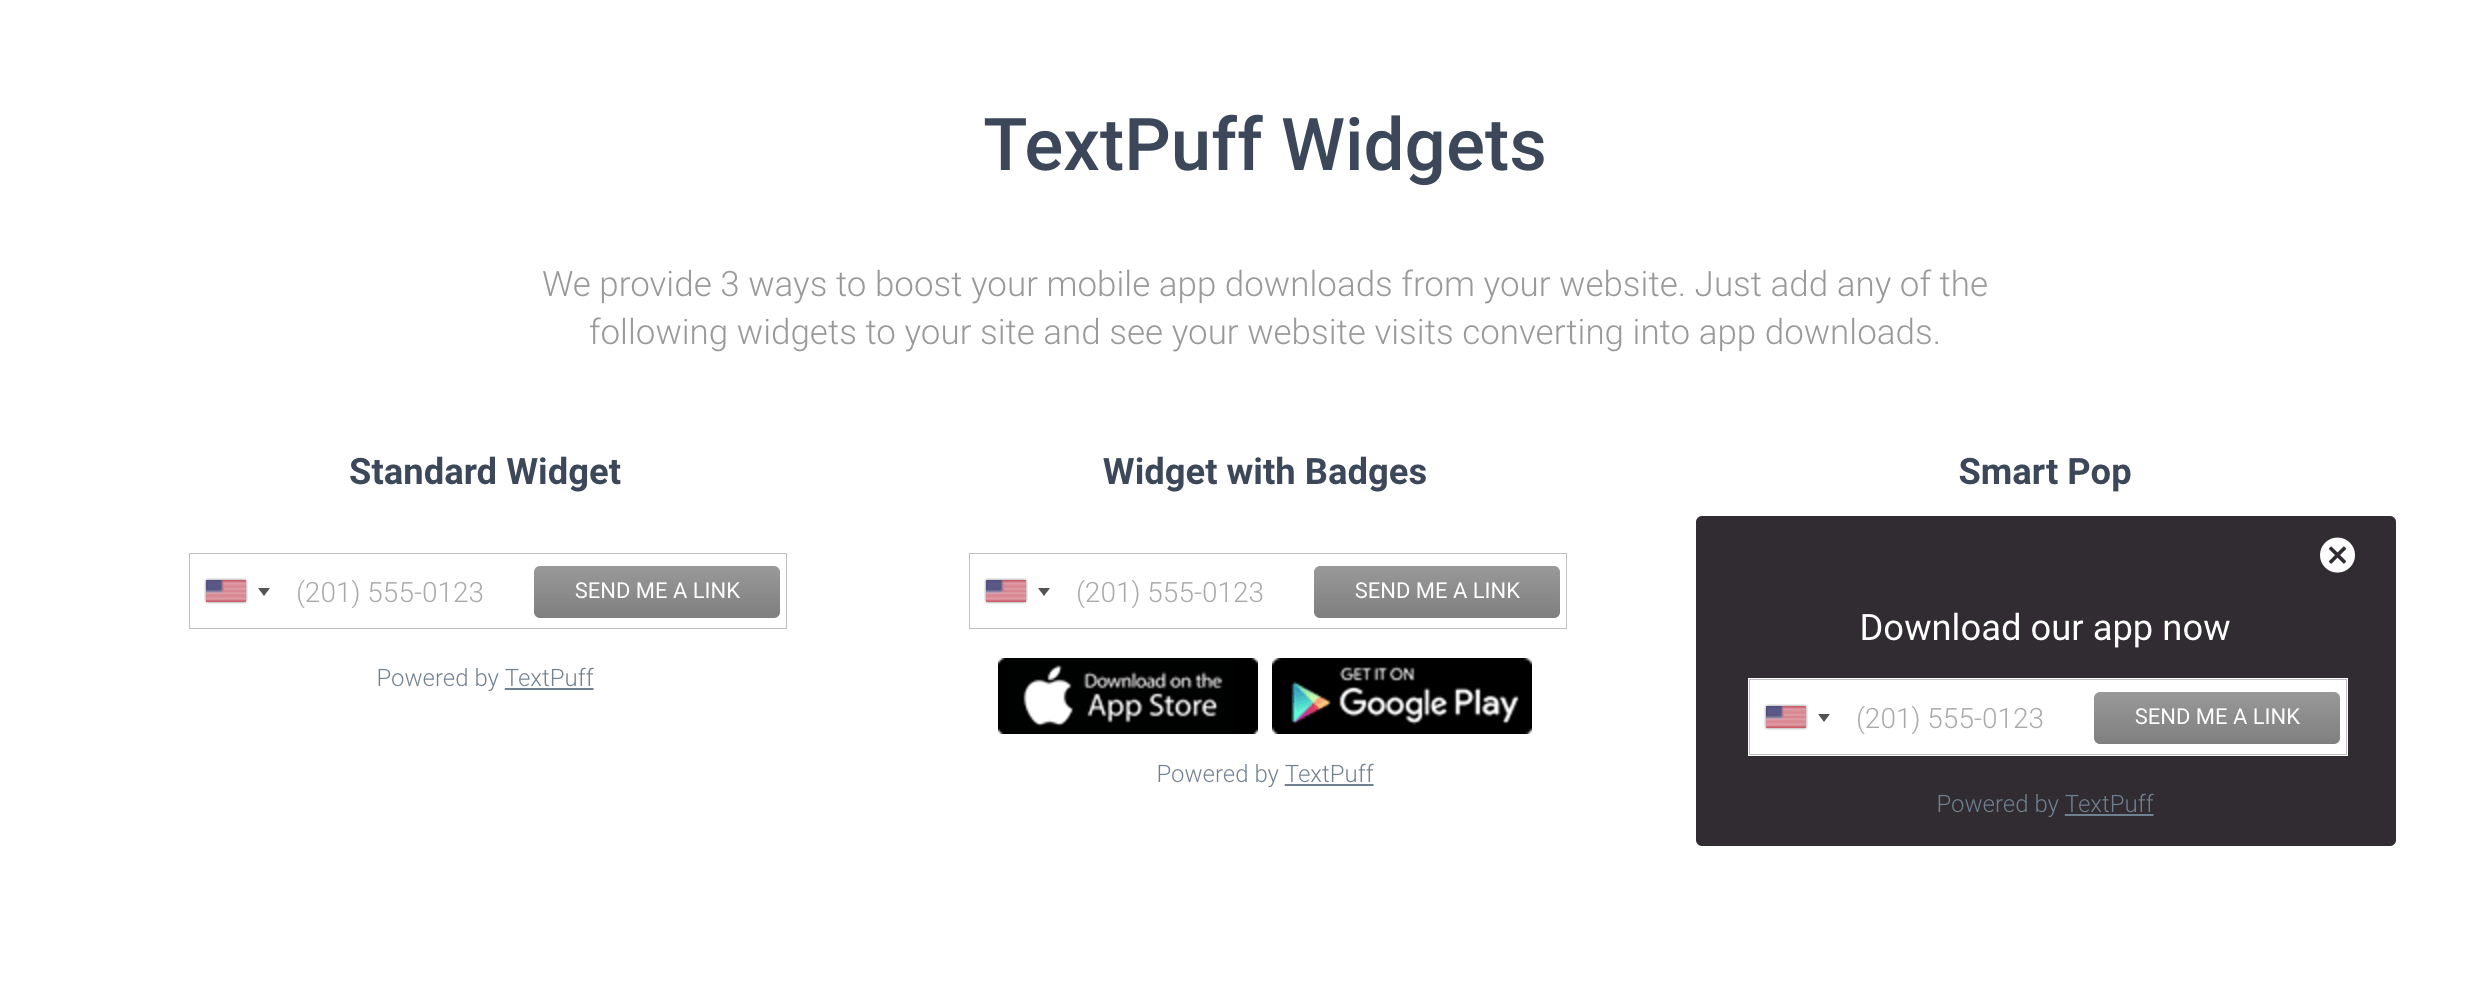 Use TextPuff to increase your app downloads organically